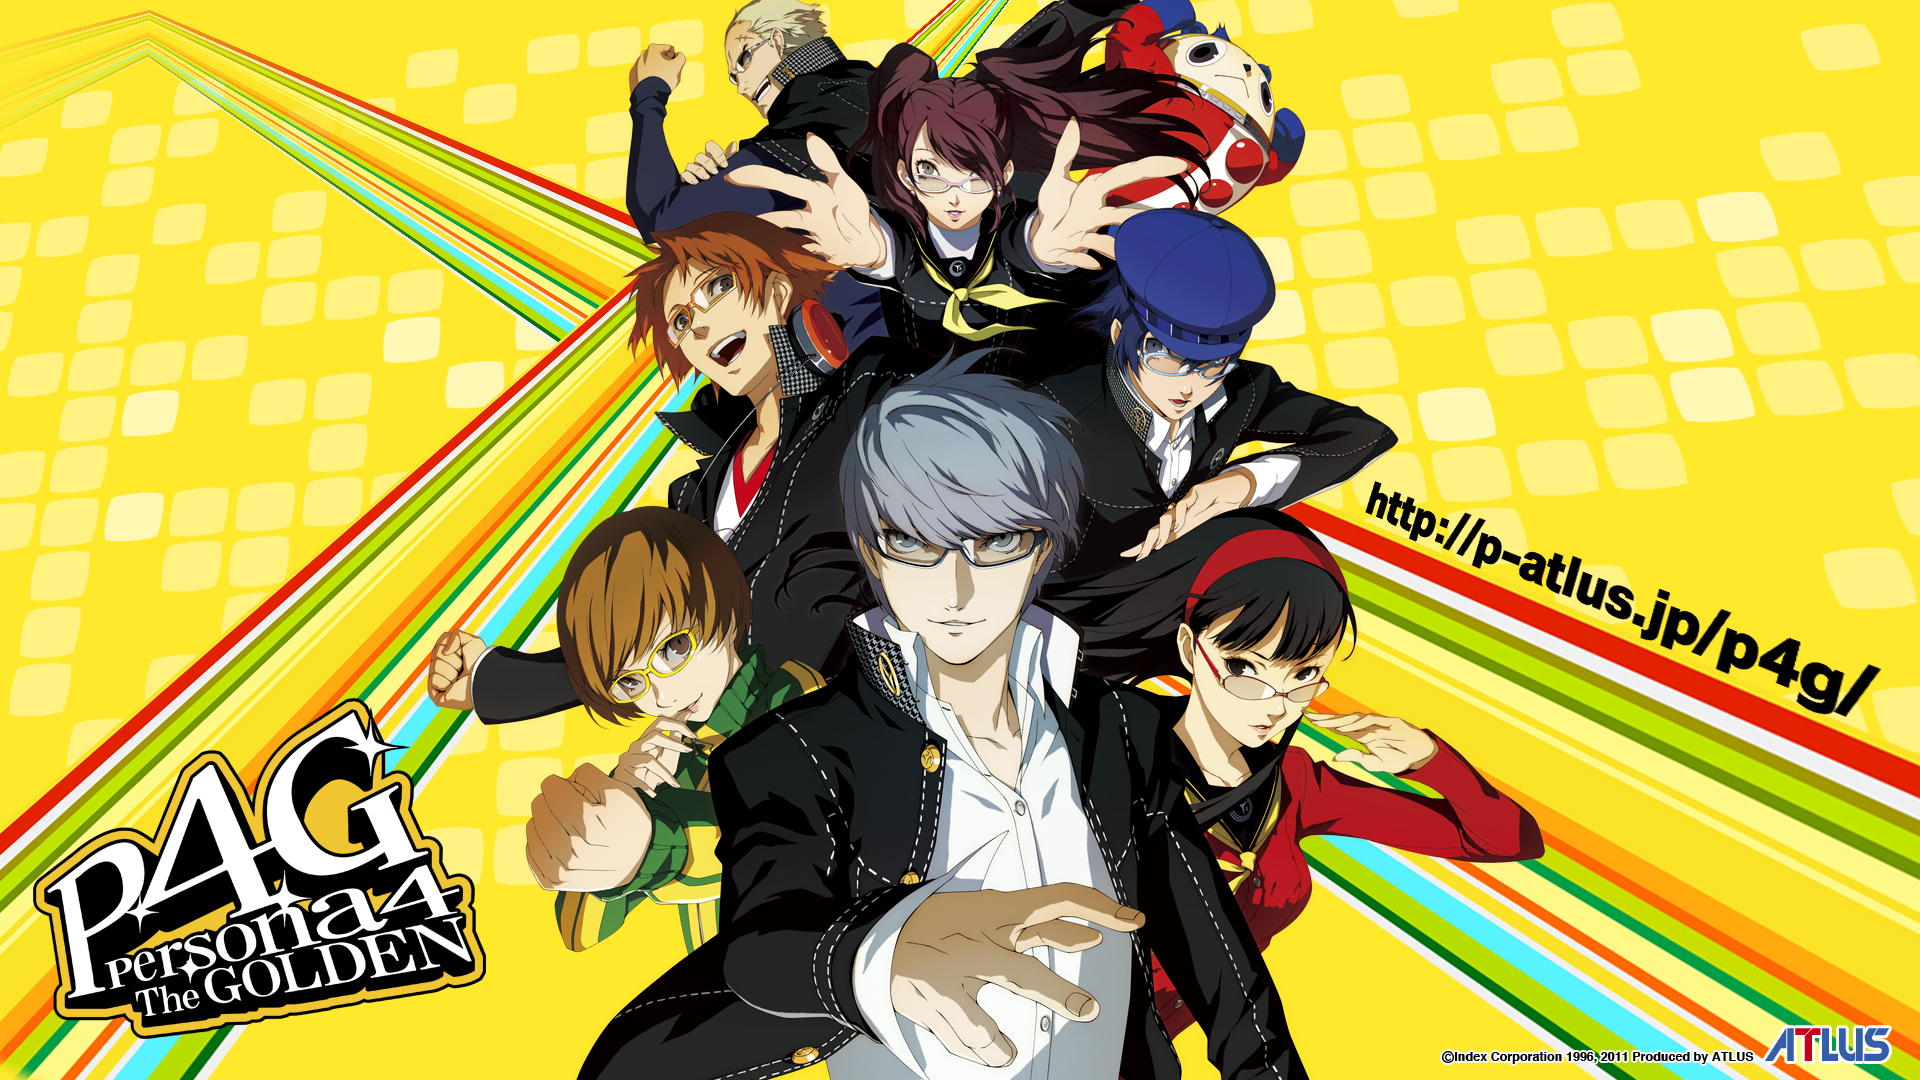 Persona 4 golden fiche rpg reviews previews wallpapers videos